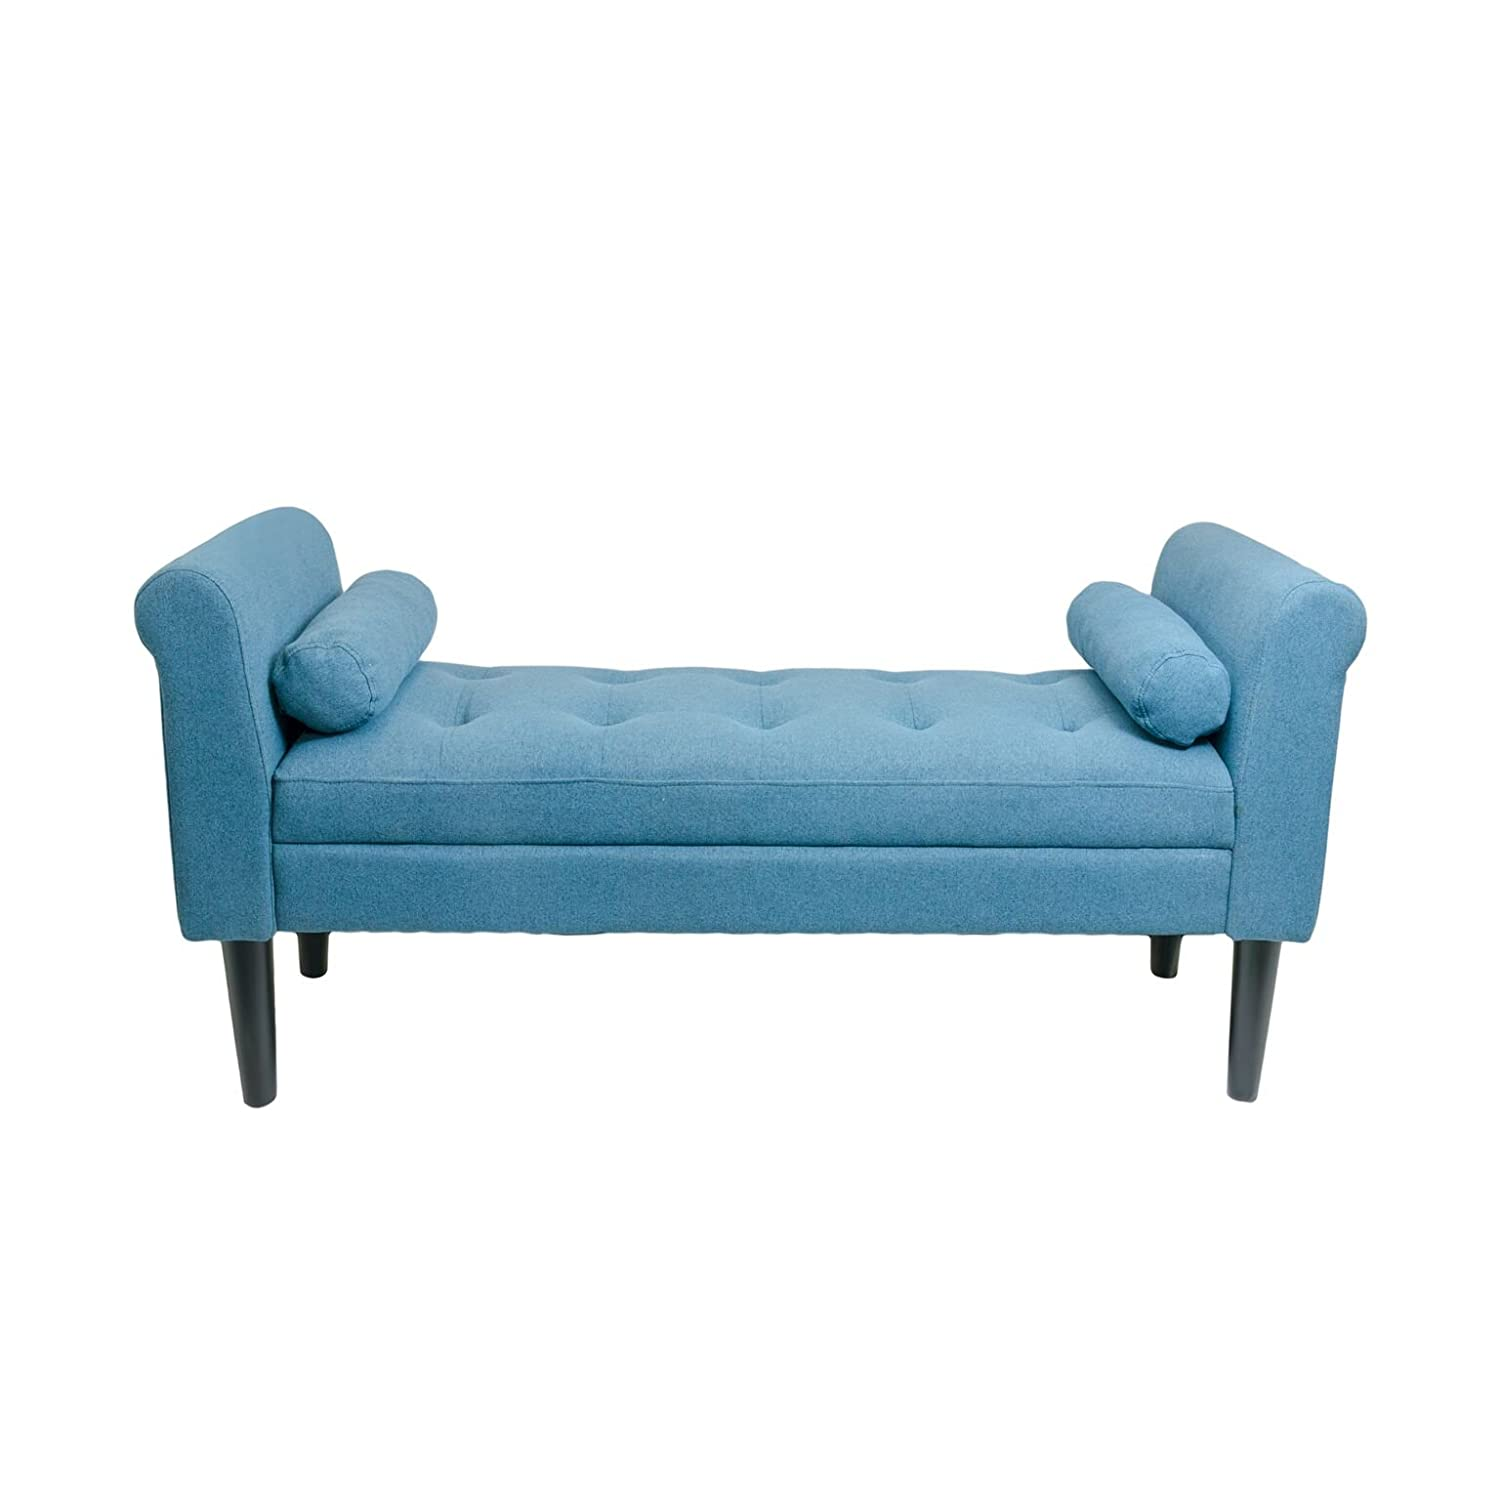 Awe Inspiring Serene Decor Bedroom Bench With Rolled Arms Sapphire Blue Home Interior And Landscaping Elinuenasavecom